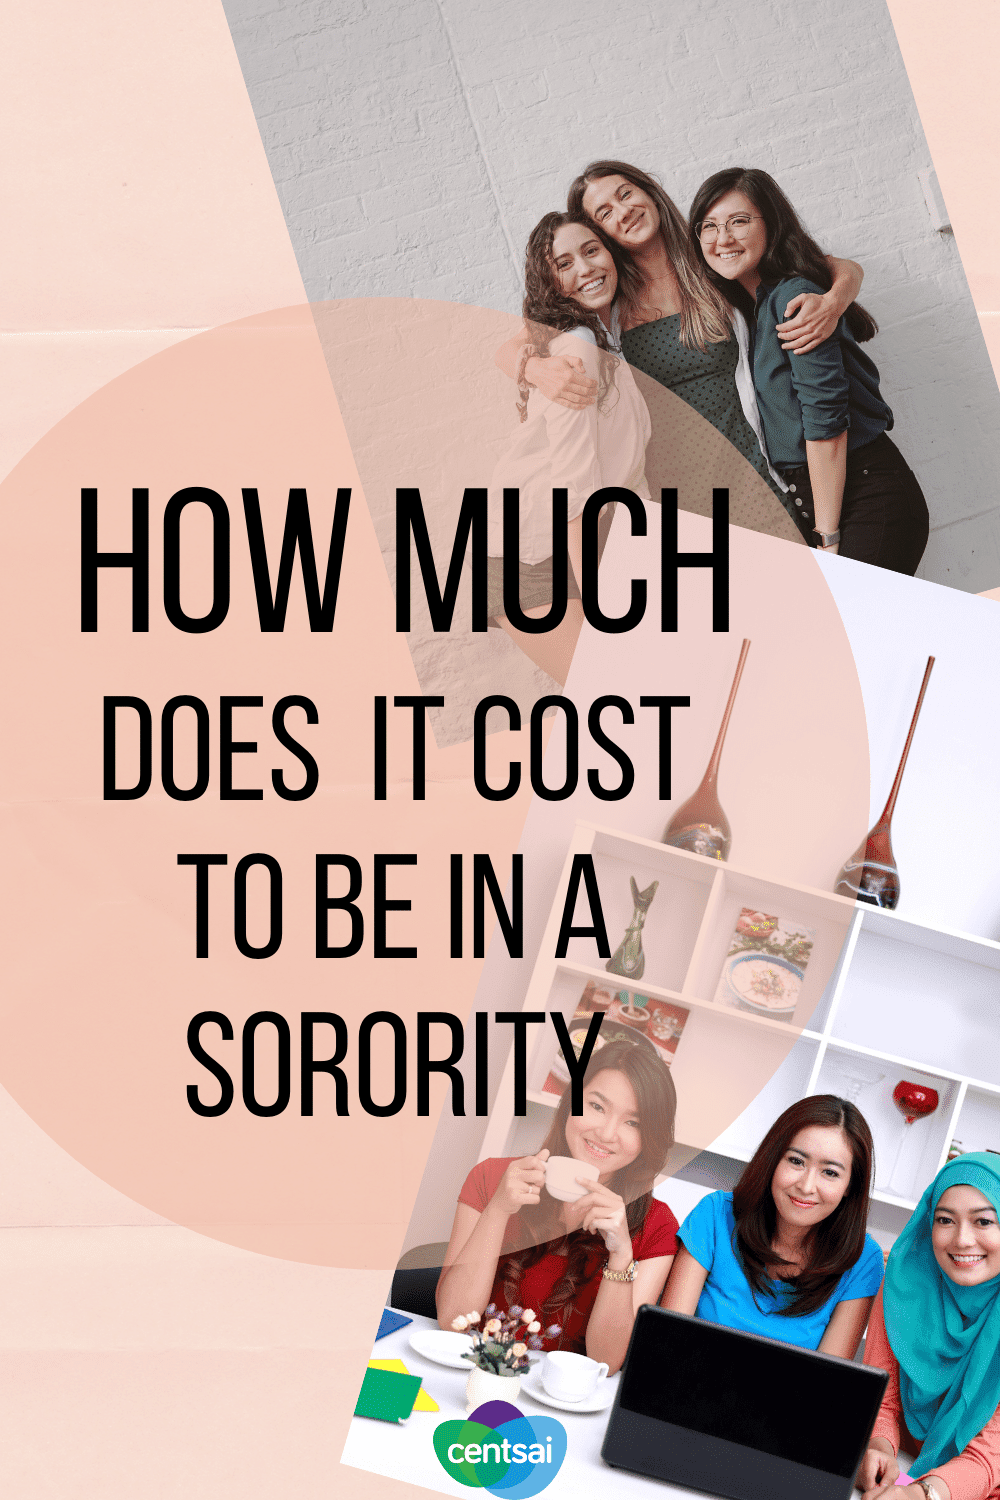 How Much Does It Cost to Be in a Sorority